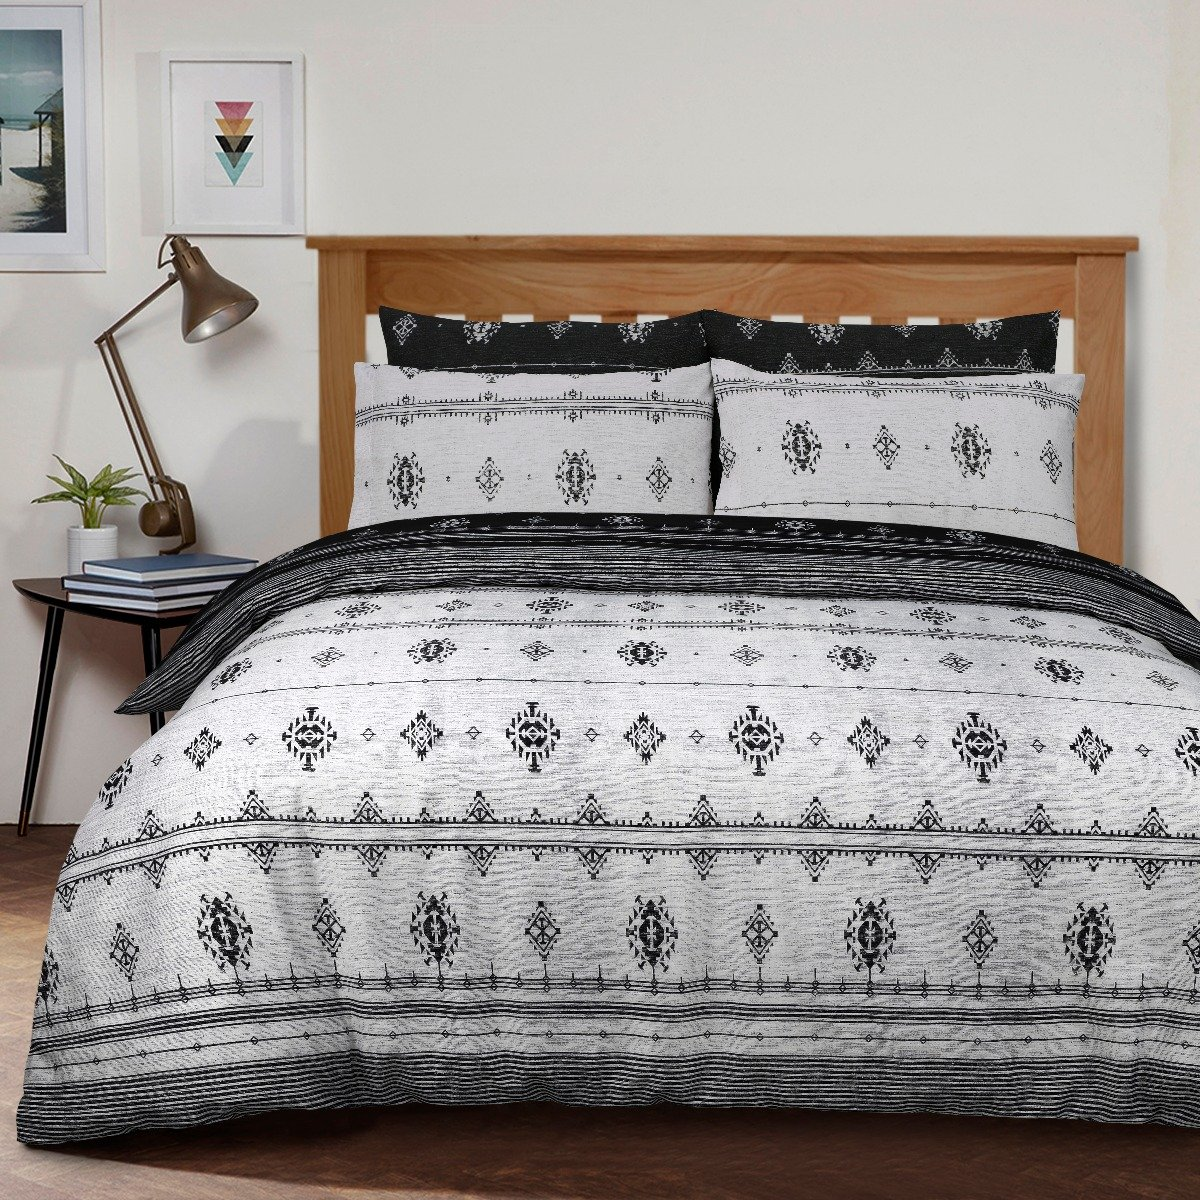 Inka Geo Black Bedding - Reversible Duvet Cover and Pillowcase Set